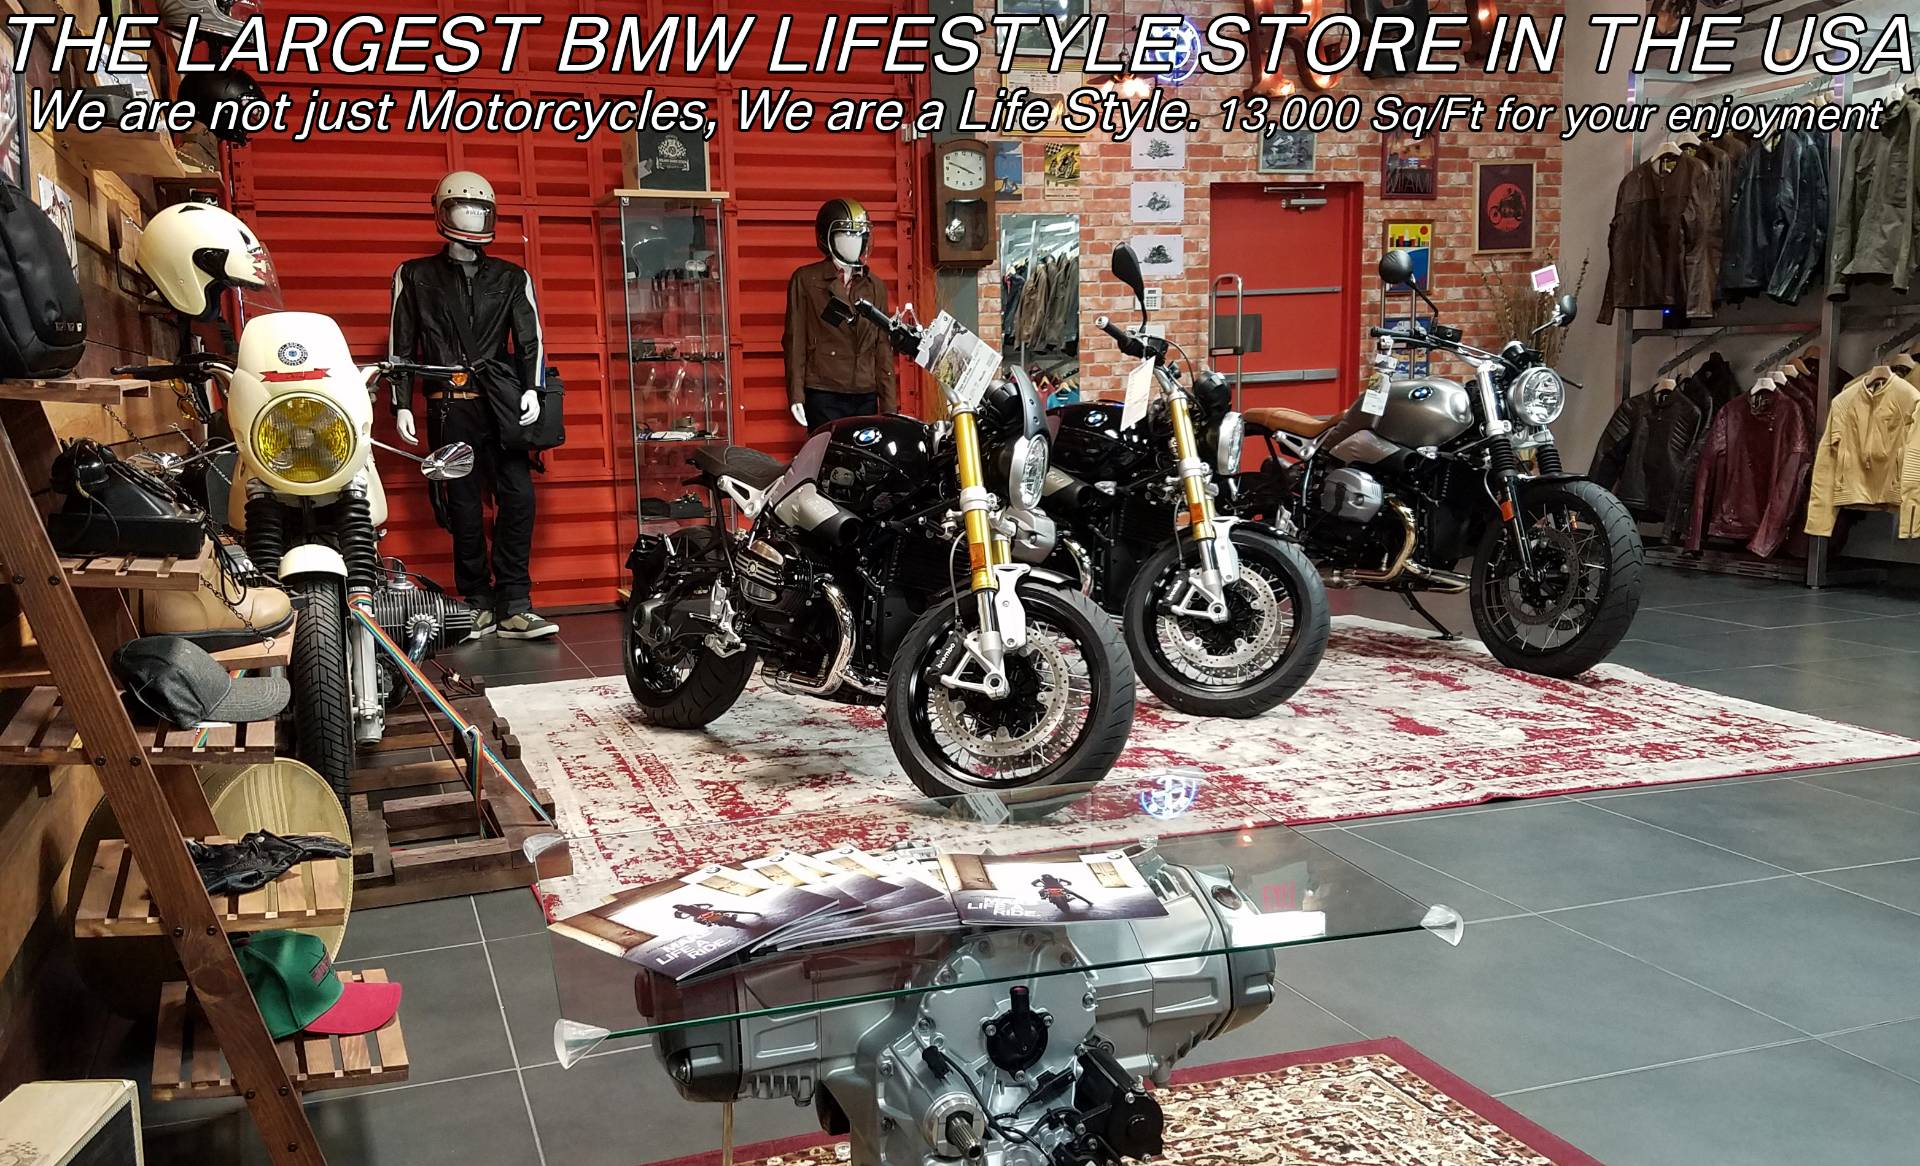 New 2019 BMW C 400 X for sale, BMW C 400X for sale, BMW Scooter, new BMW Scooter, C400X, BMW Motorcycles of Miami, Motorcycles of Miami, Motorcycles Miami - Photo 21